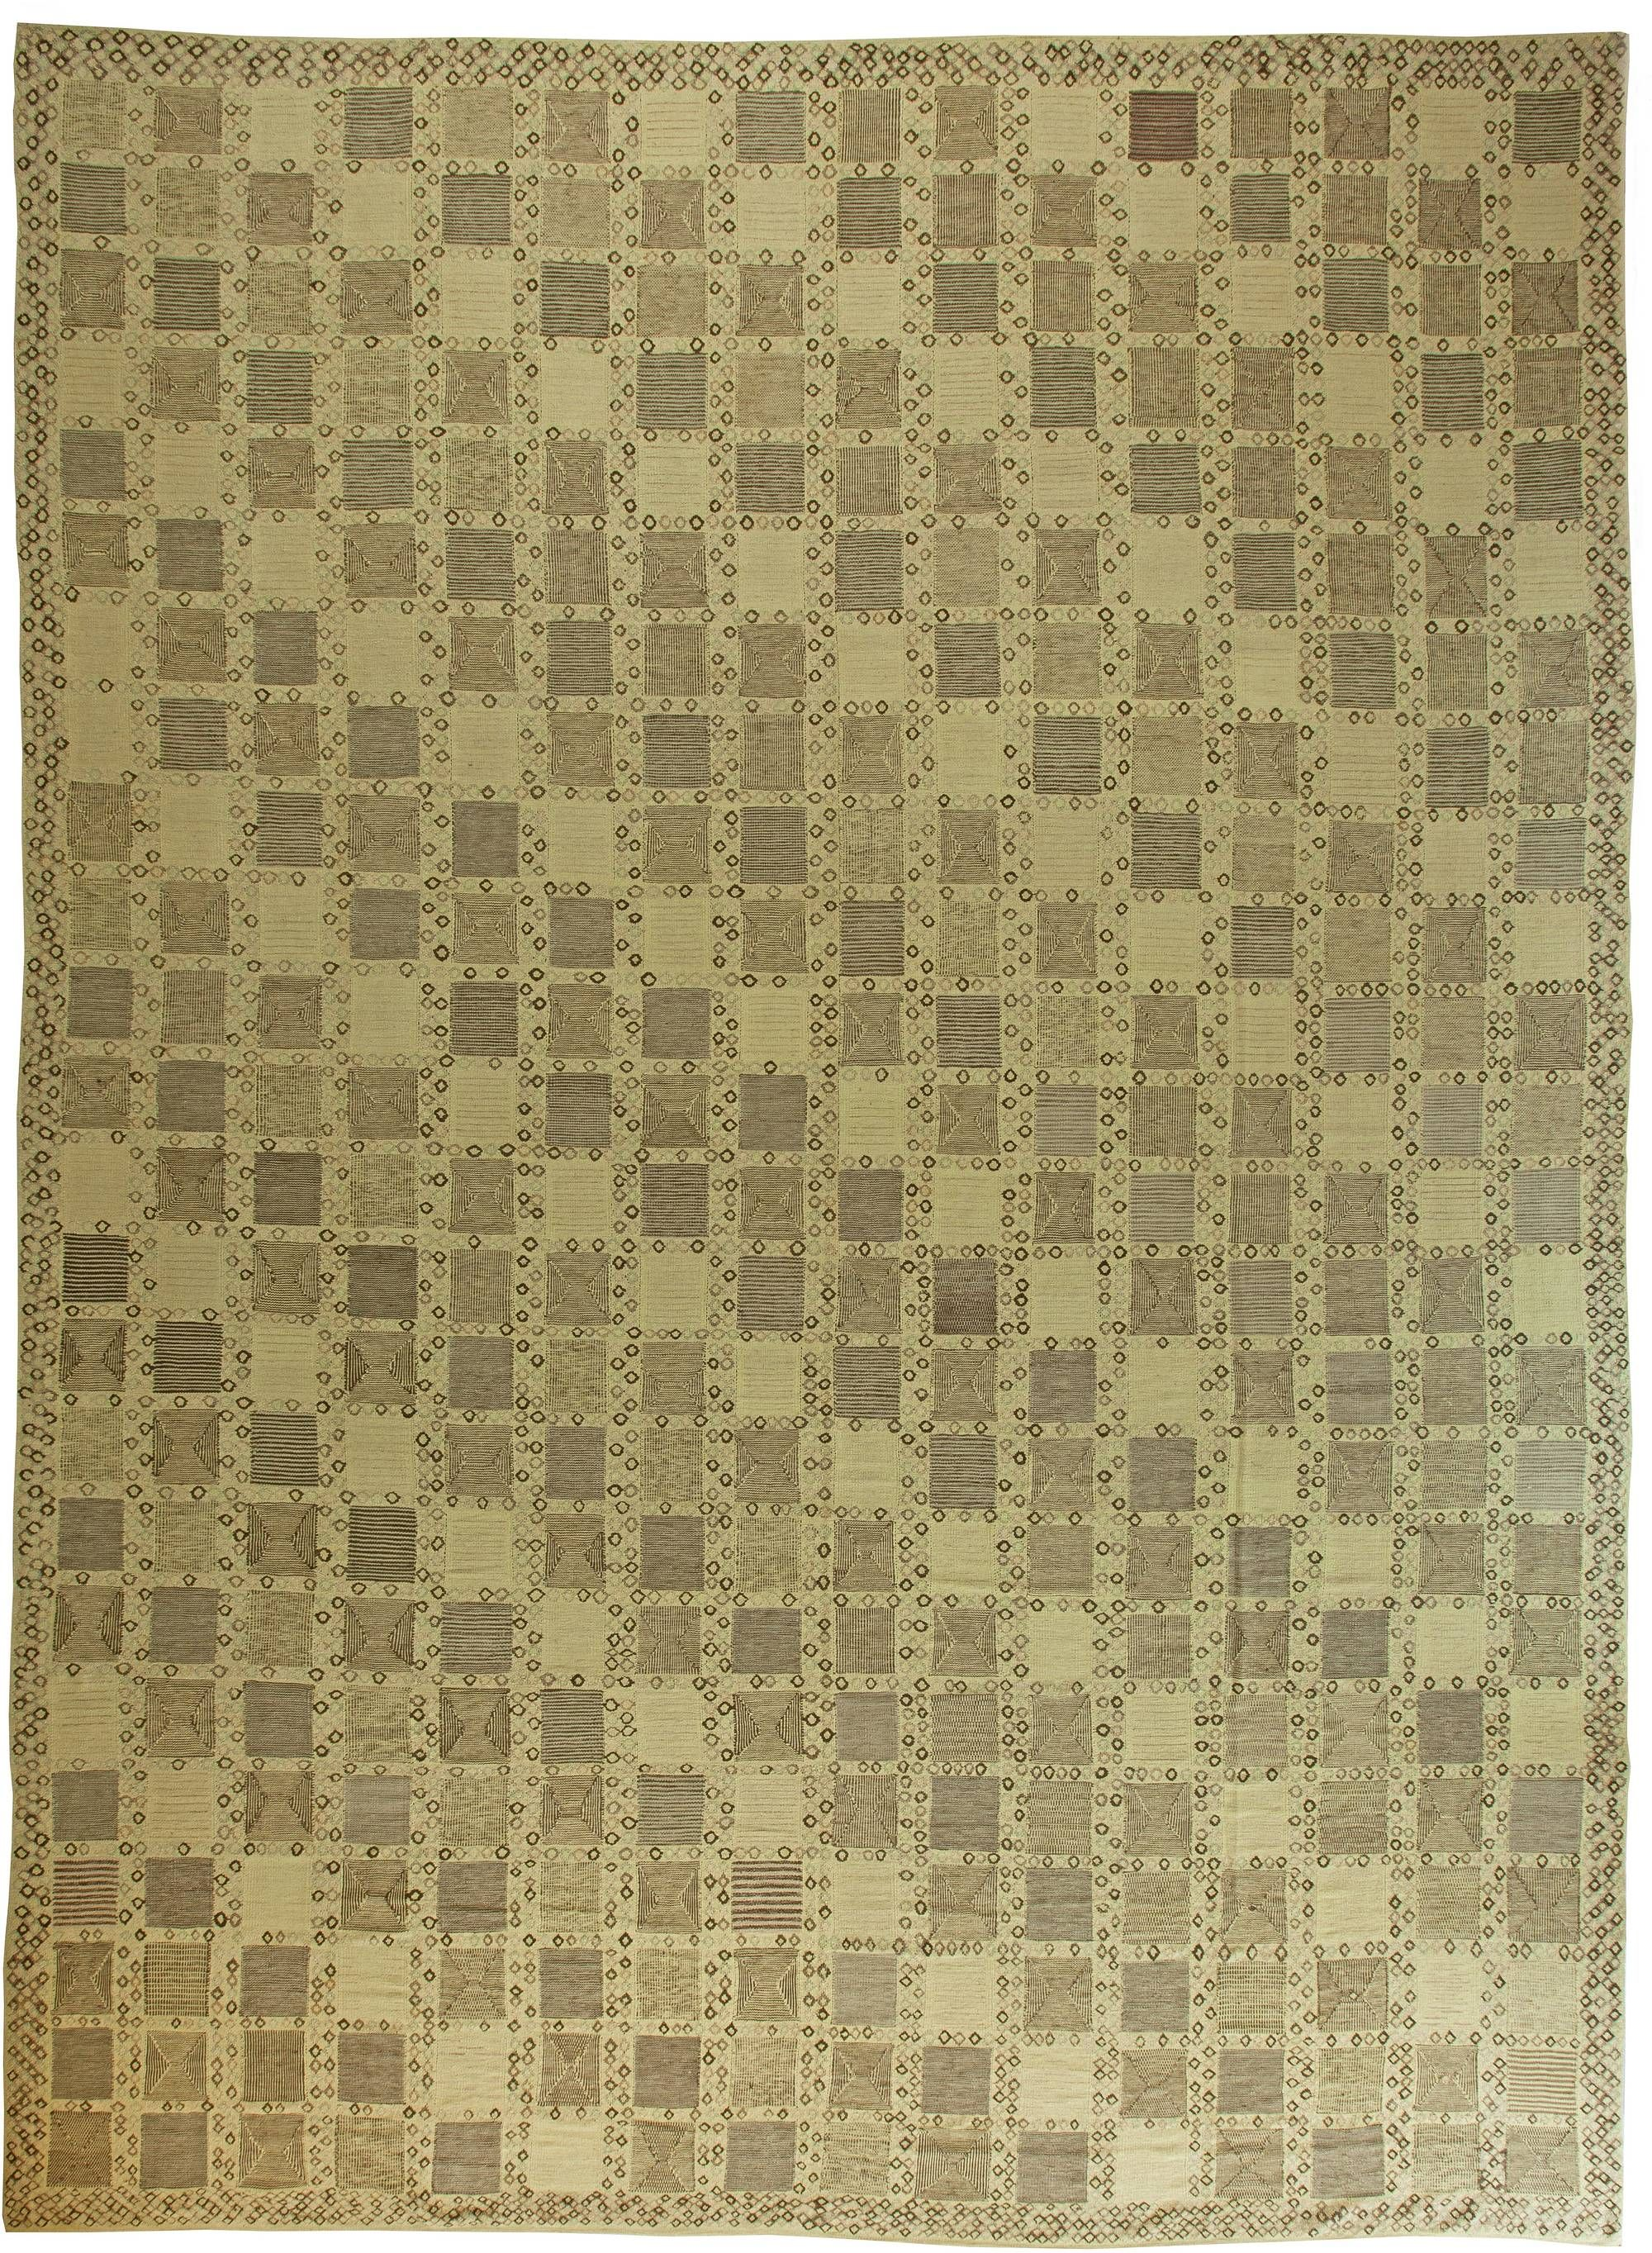 Swedish Rugs Scandinavian Geometric Green Rug From Doris Leslie Blau Features Hand Knotted Wool Pattern Swedishrug